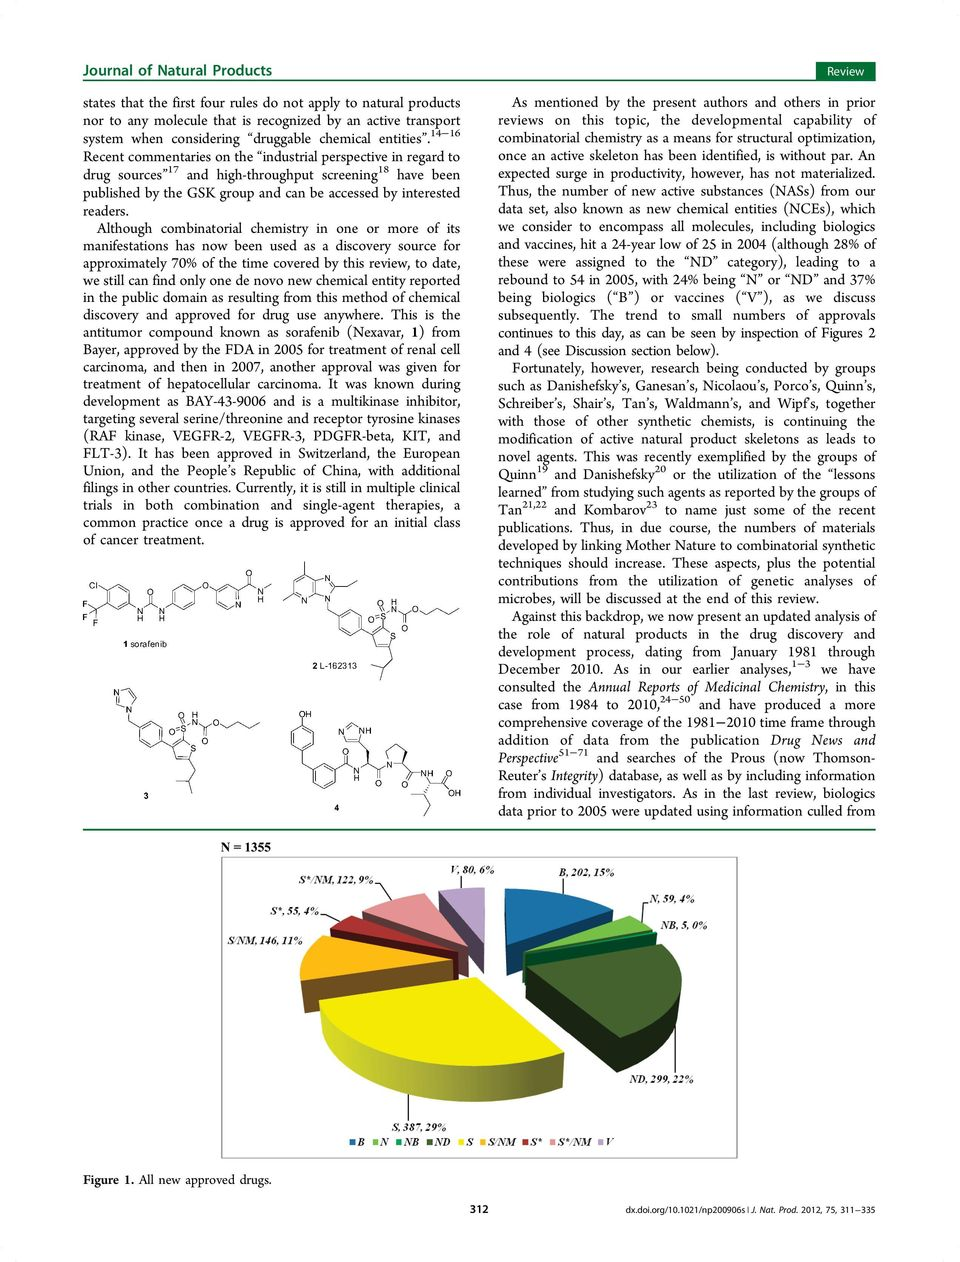 Although combinatorial chemistry in one or more of its manifestations has now been used as a discovery source for approximately 70% of the time covered by this review, to date, we still can find only